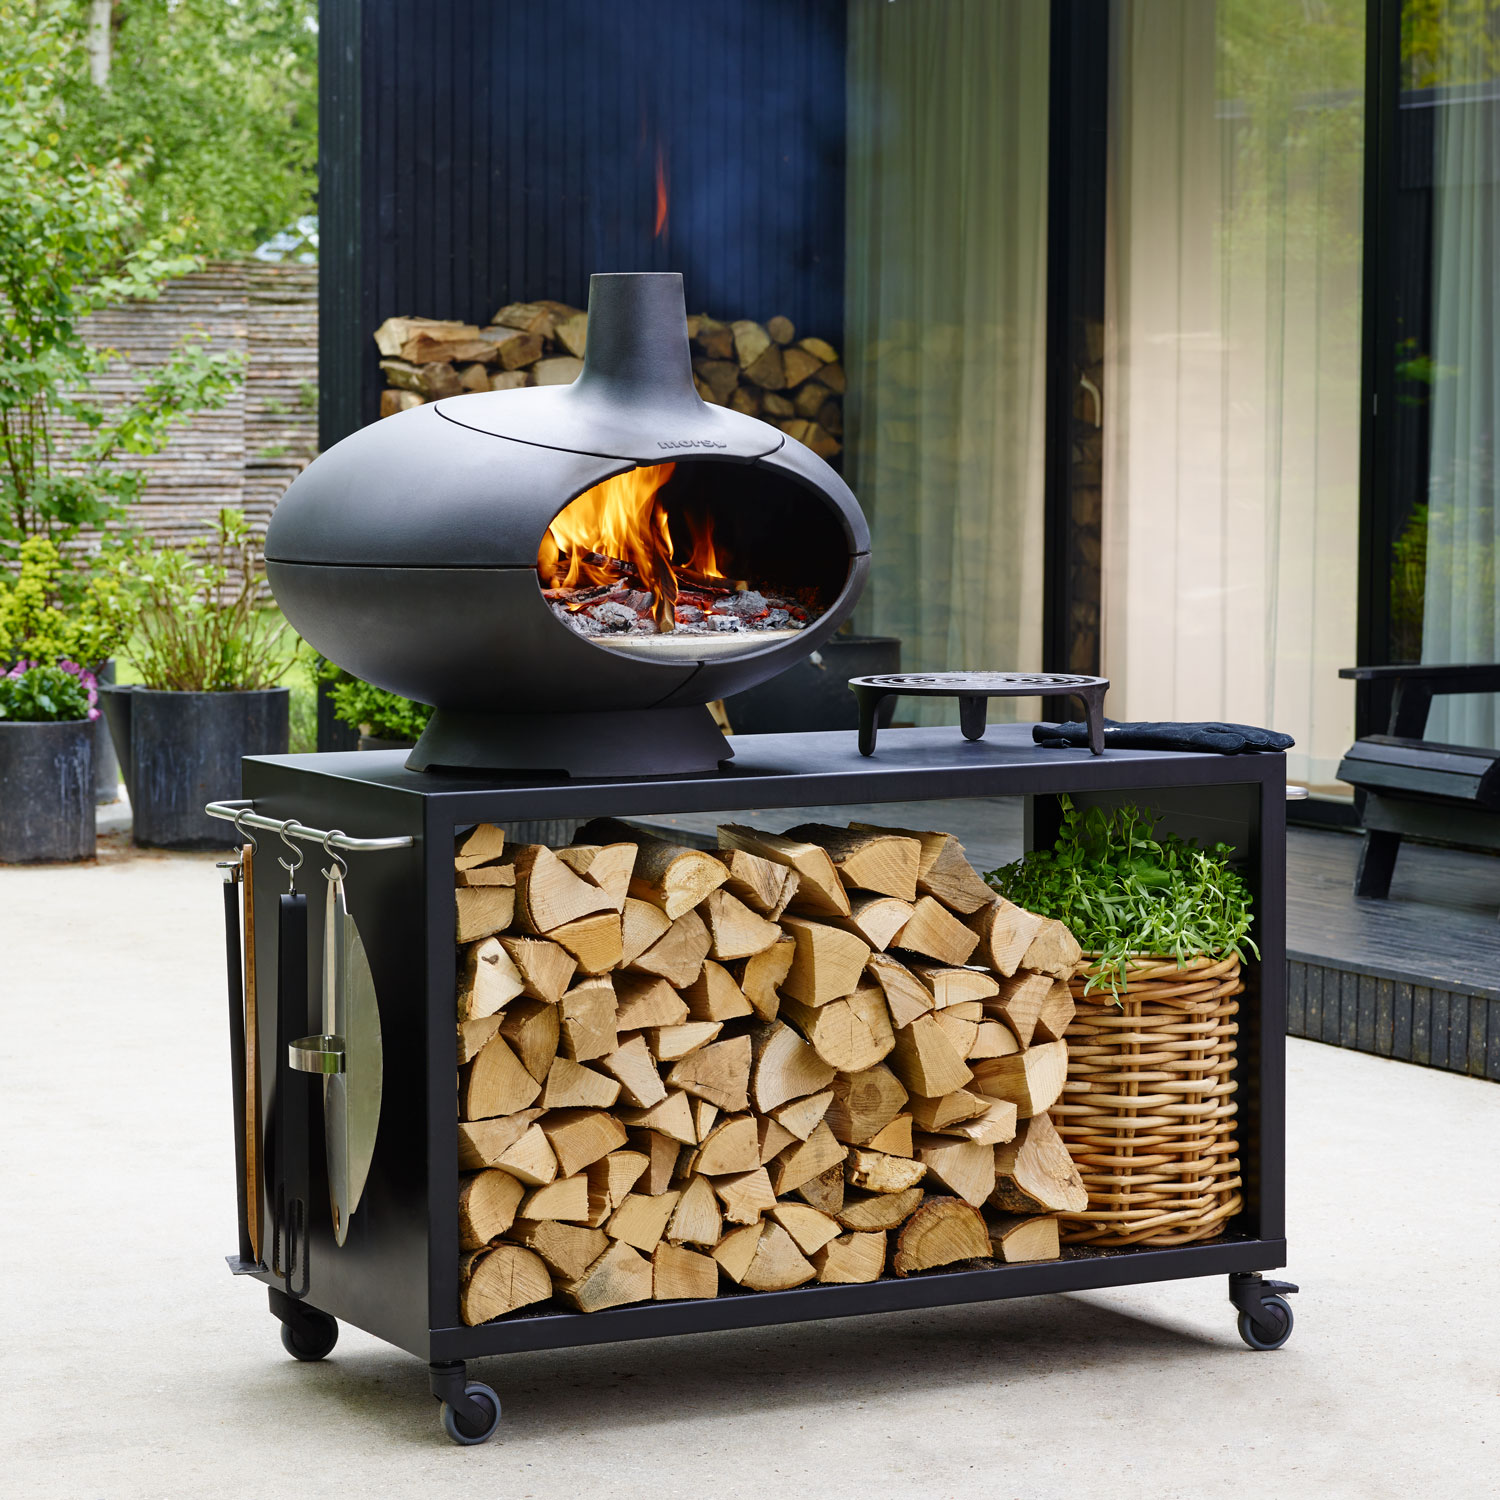 Morso Forno garden set comprising outdoor oven, stand, accessories and Tuscan grill